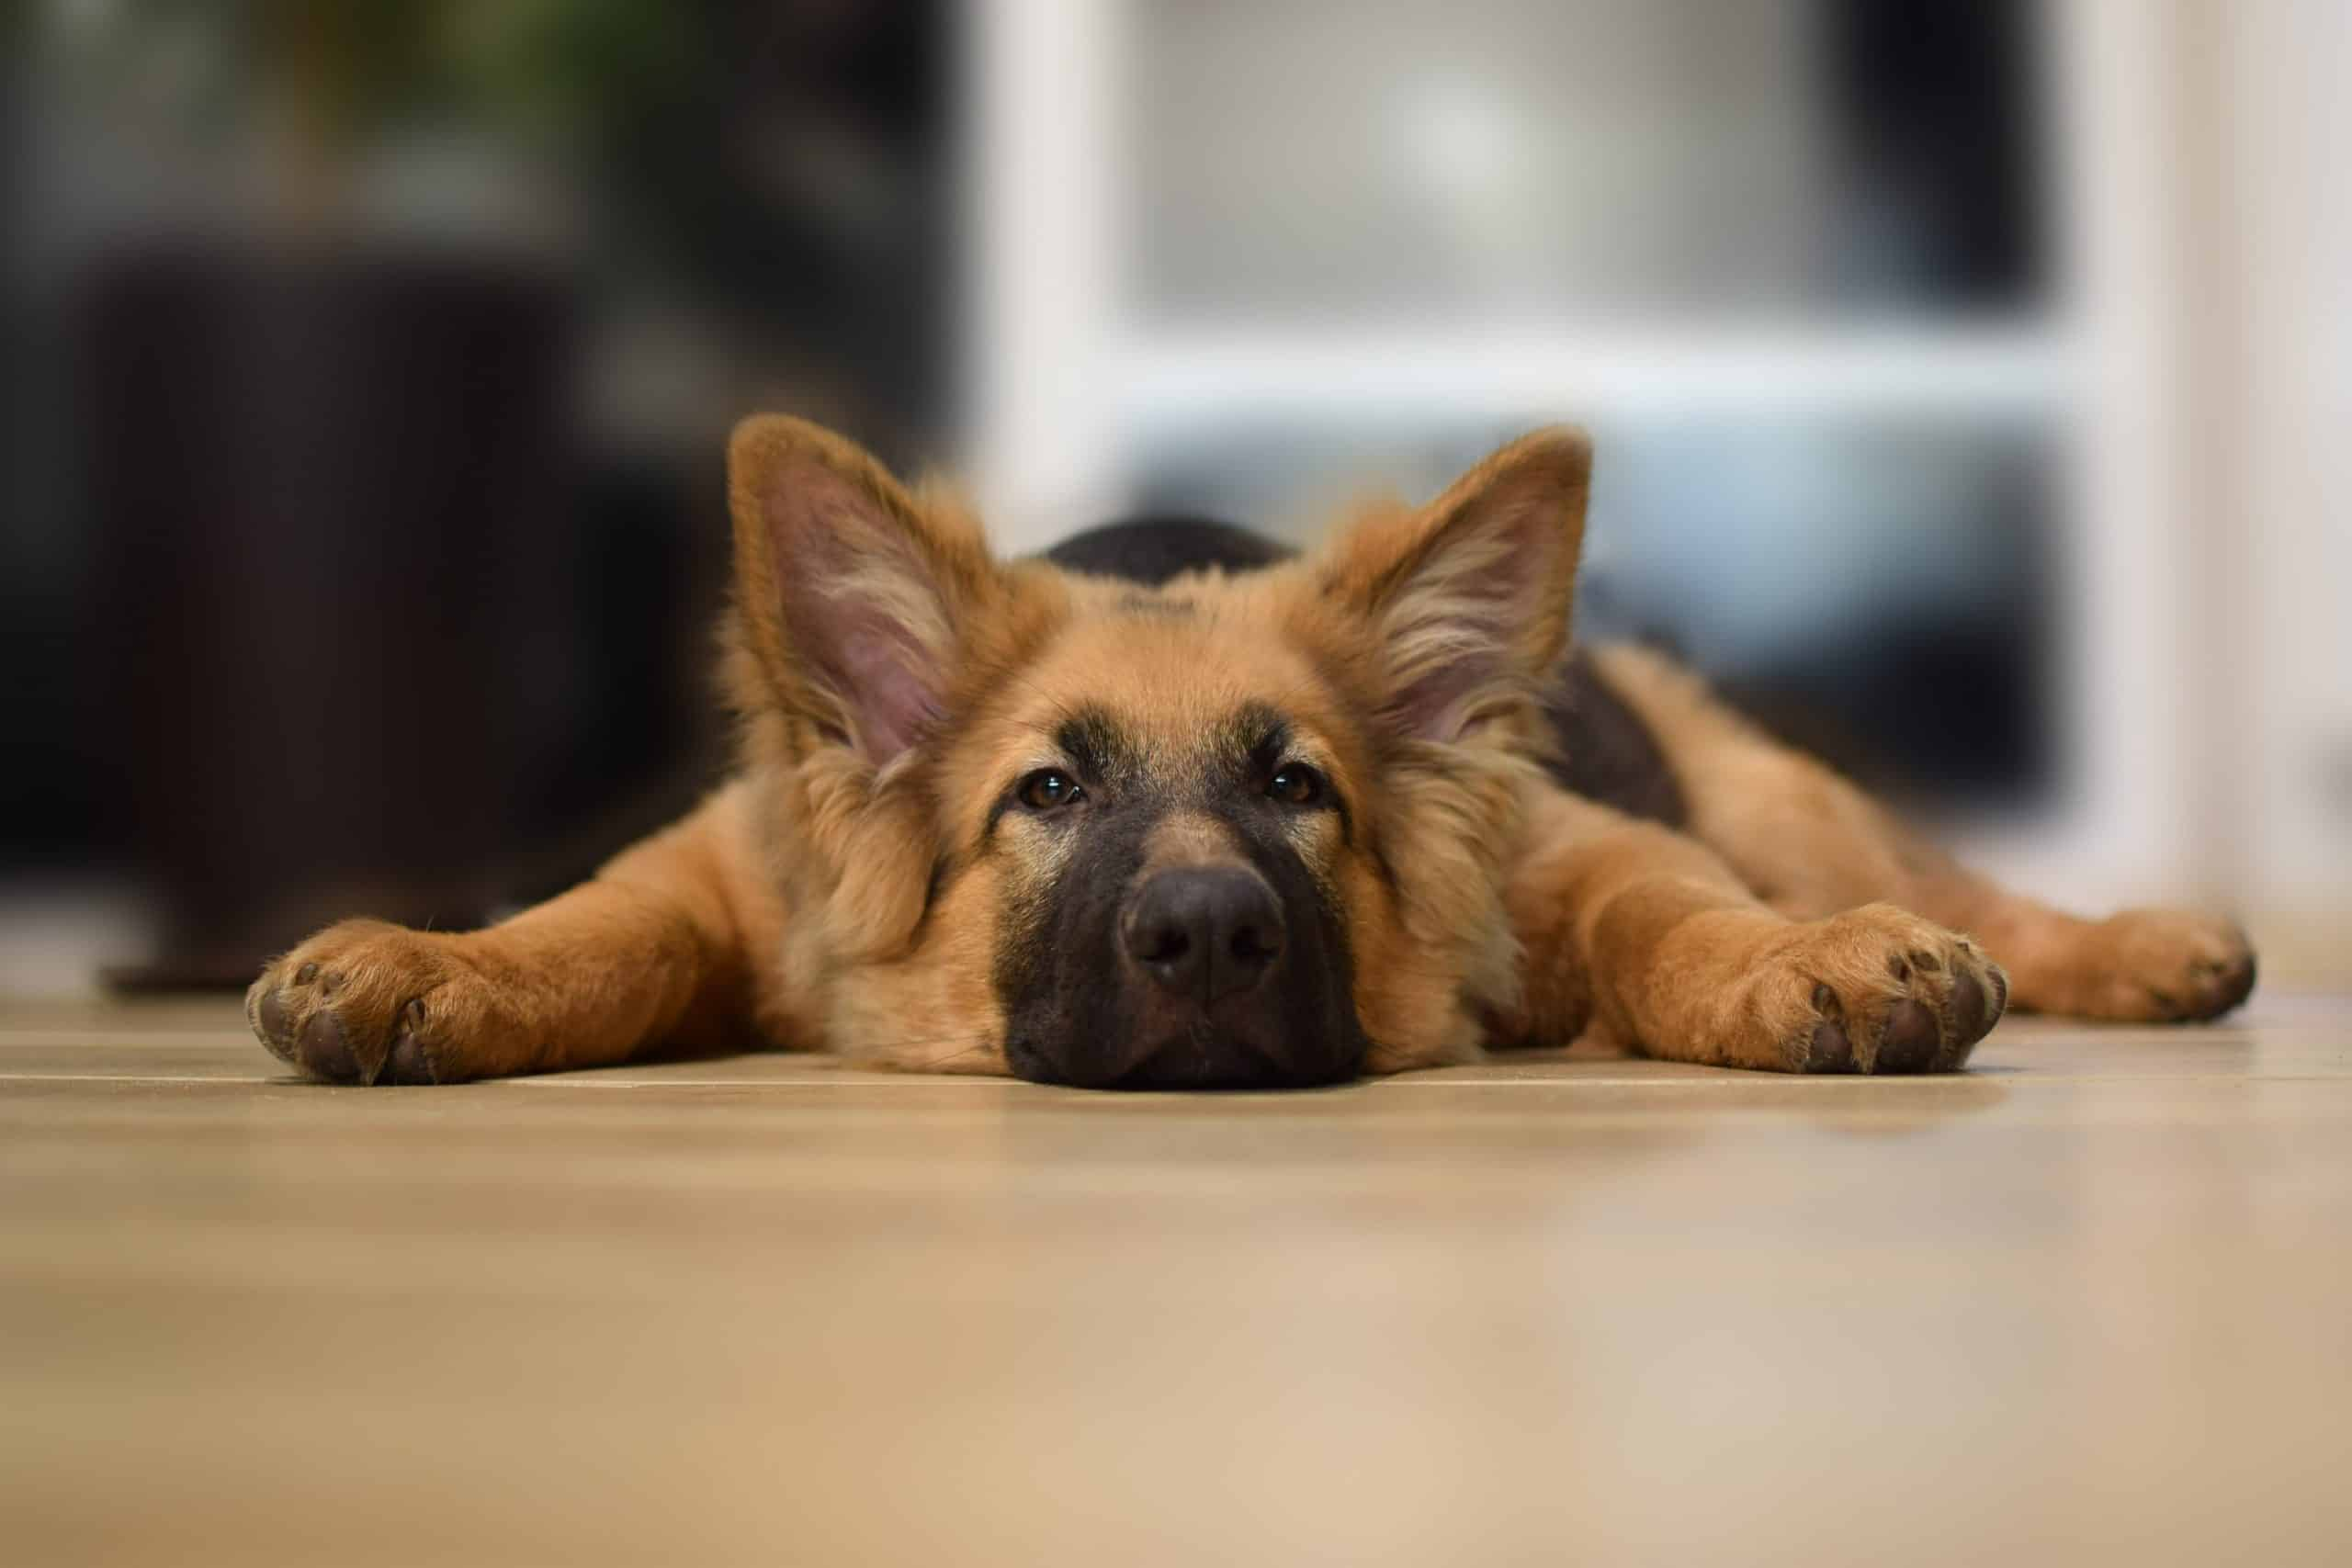 When Should You Spay Or Neuter A German Shepherd - Image By rovepets - Image By rovepets